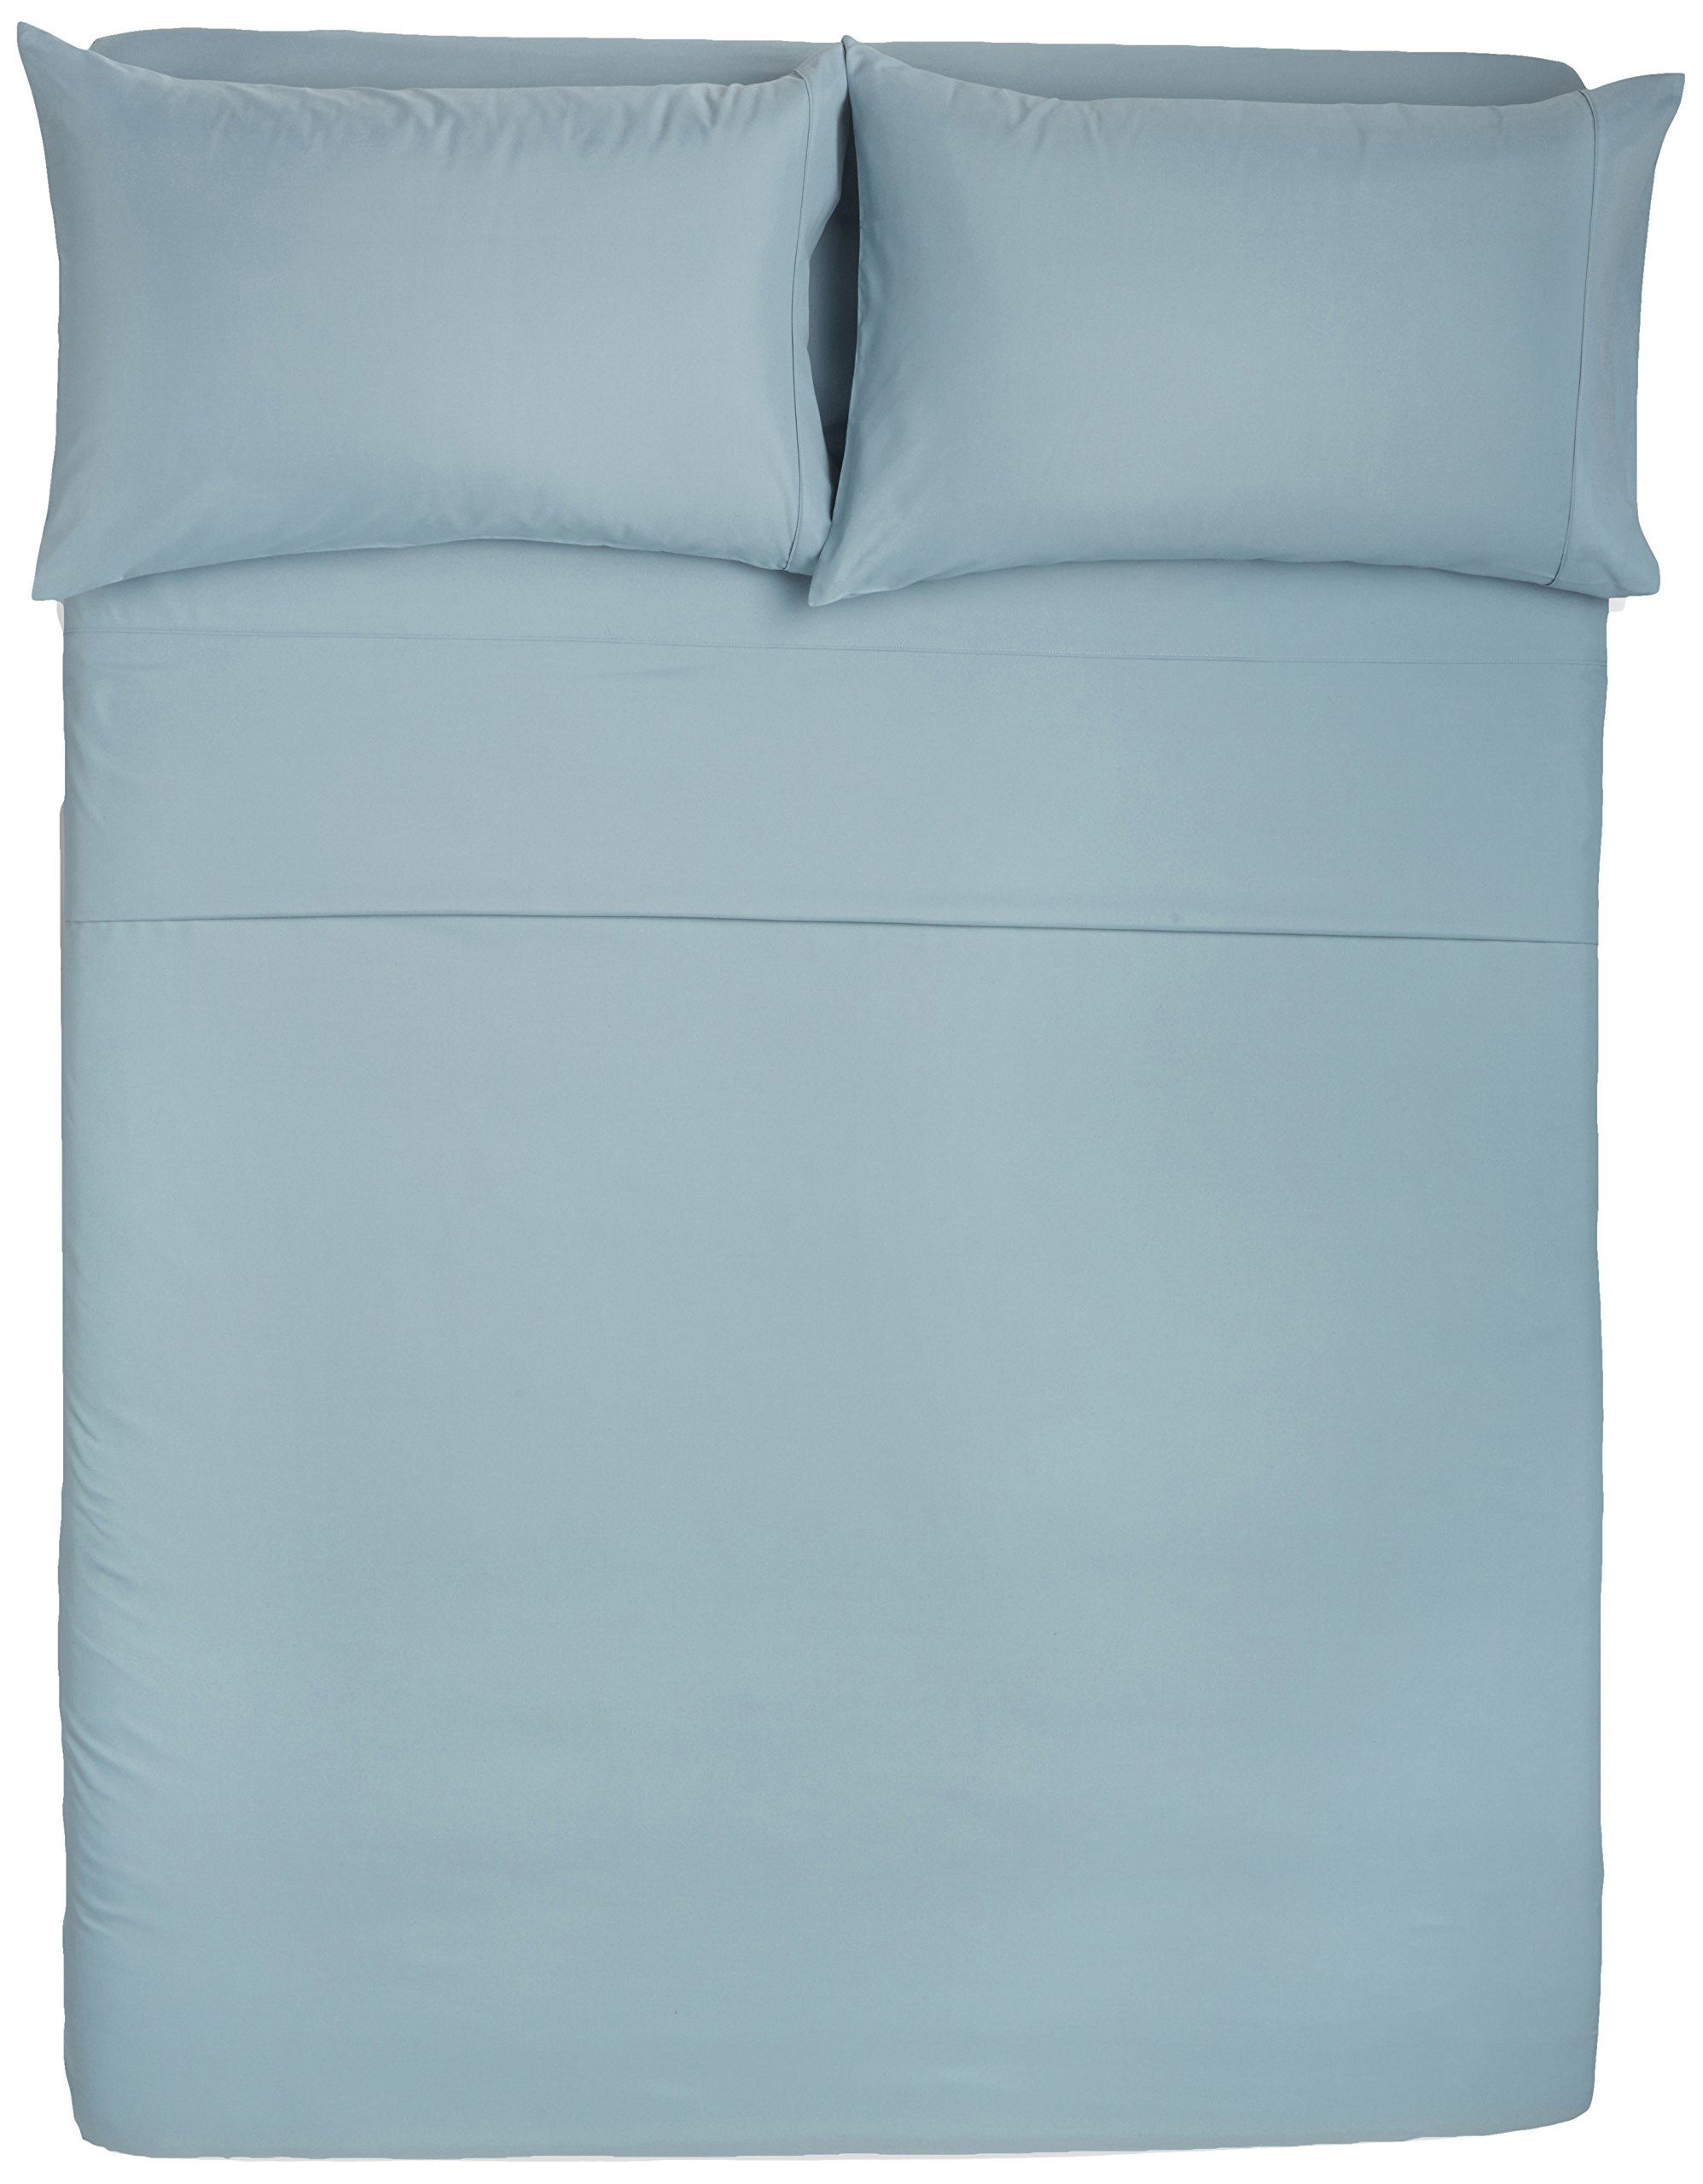 AmazonBasics Microfiber Sheet Set - Full, Spa Blue by AmazonBasics (Image #3)